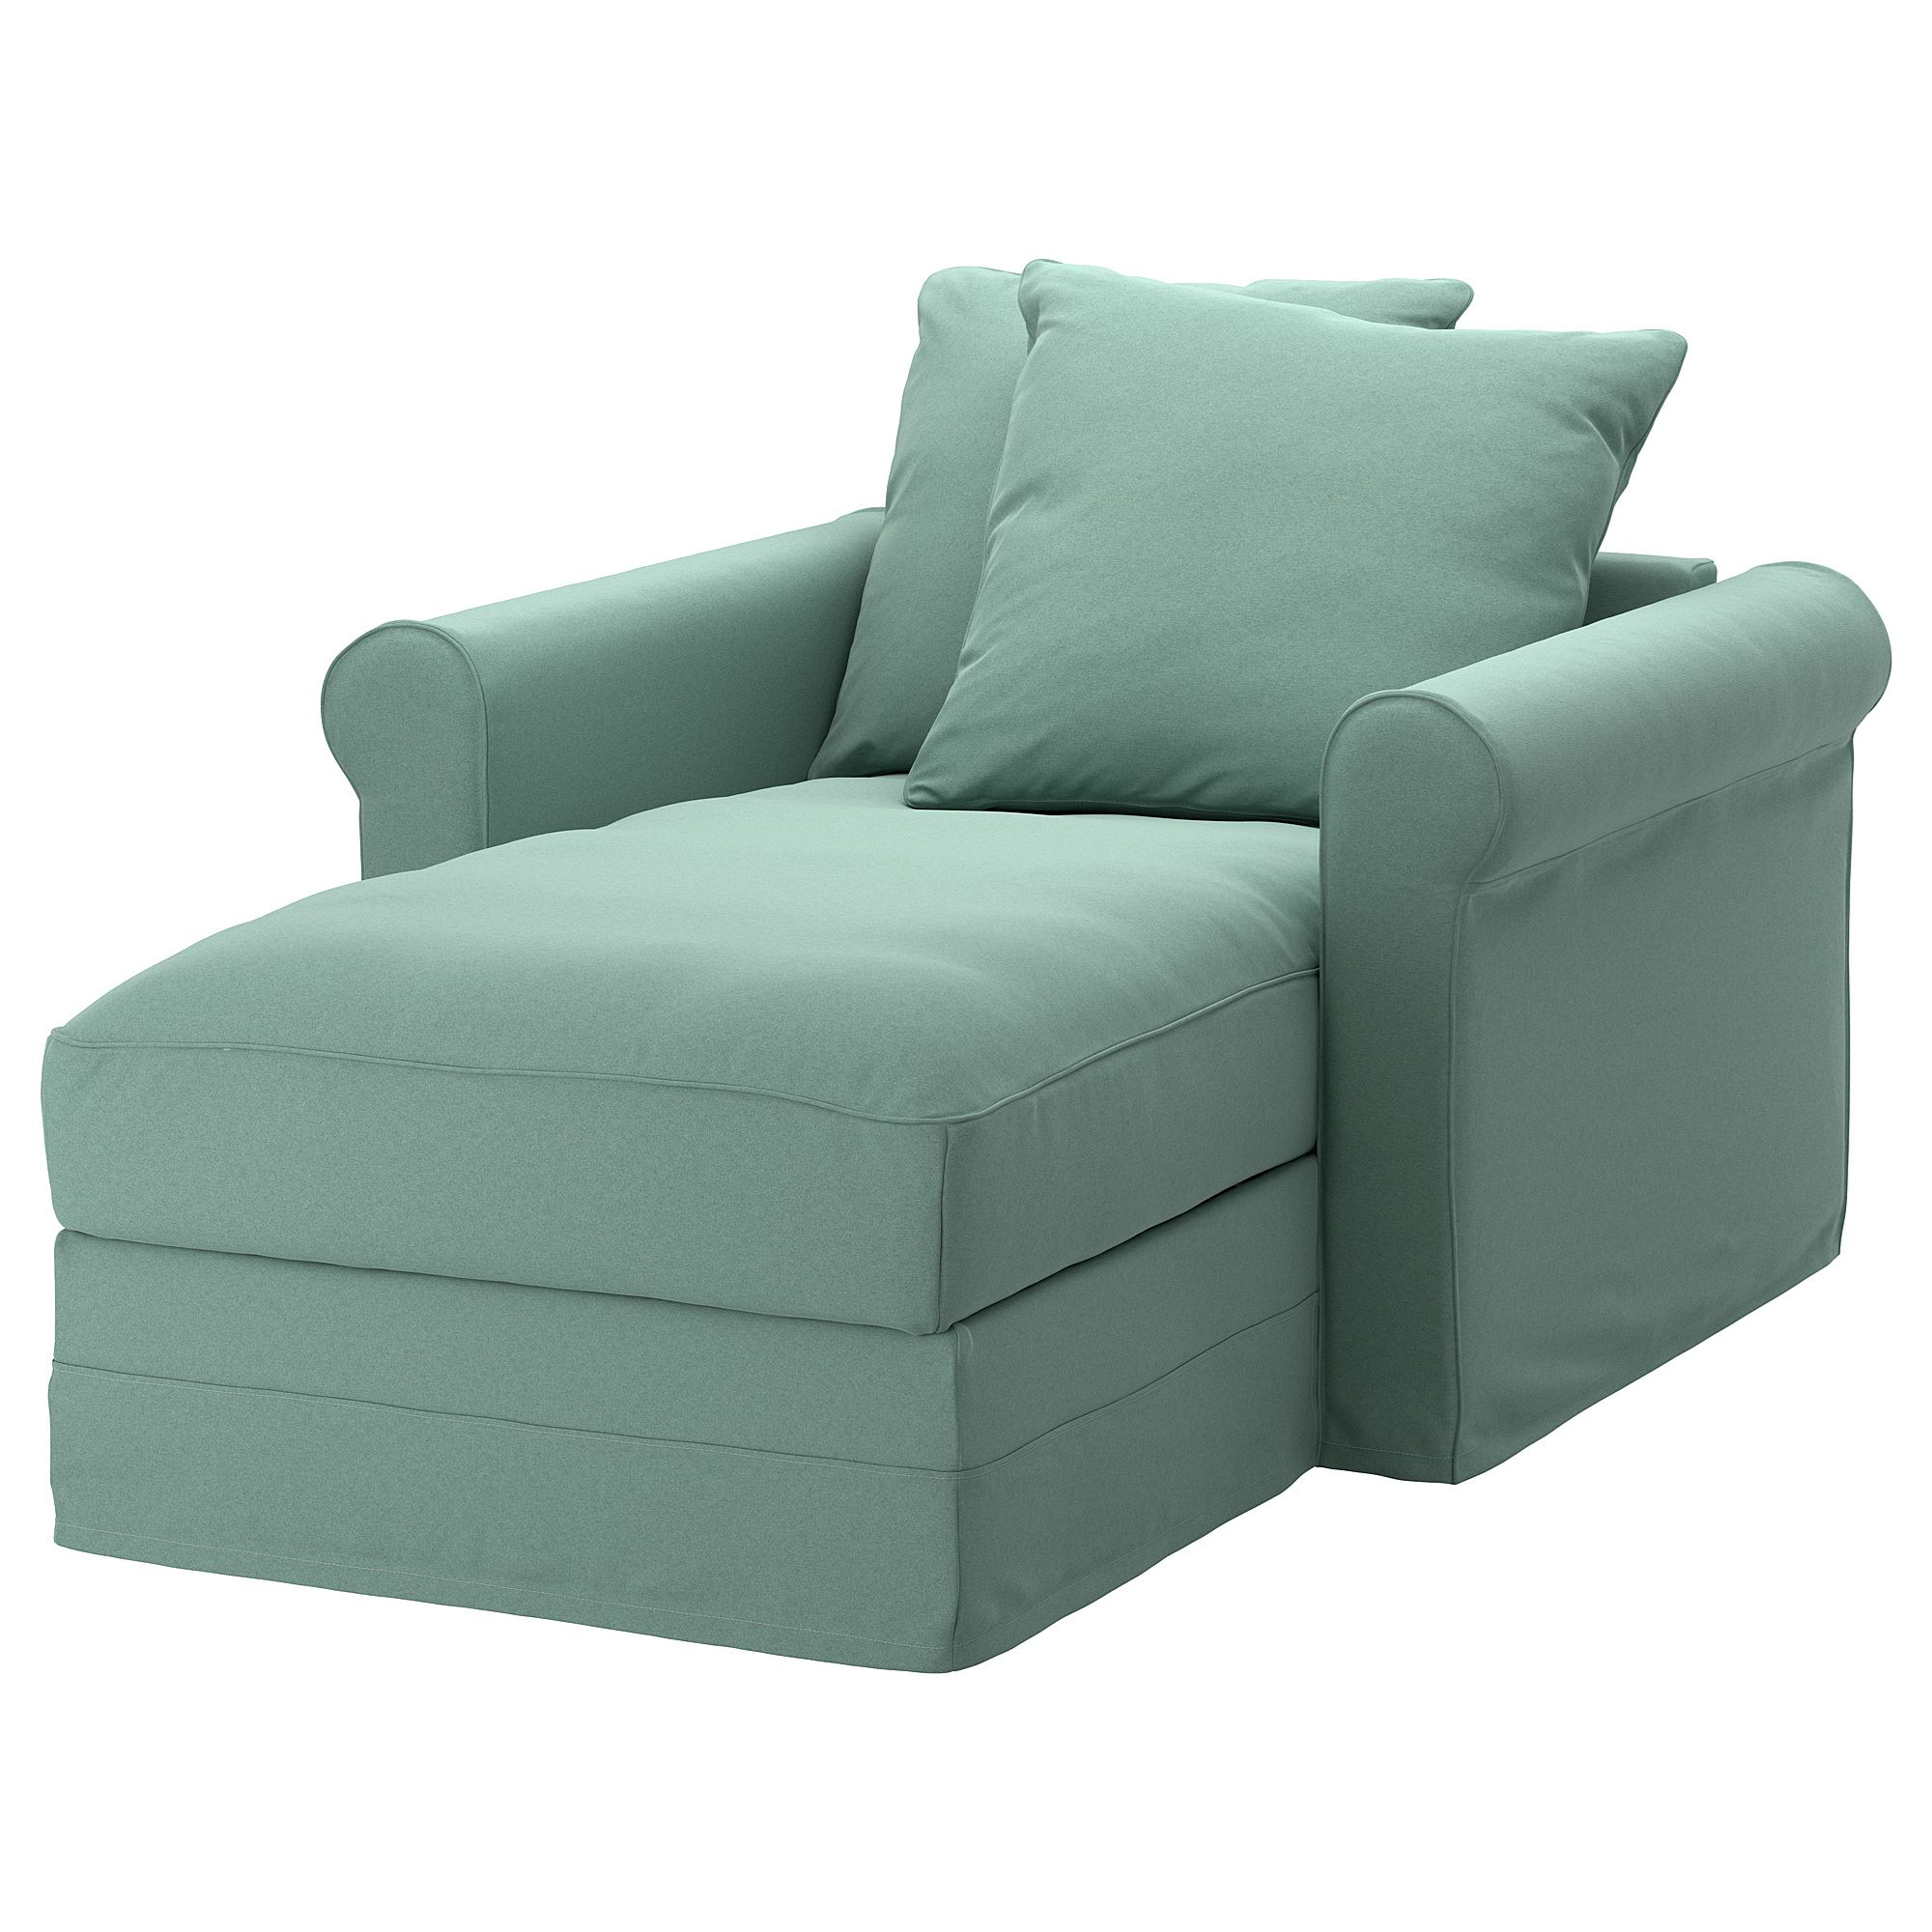 christopher wicker knight home product green adjustable lounge free overstock with cushion outdoor by chaise today shipping garden puerta